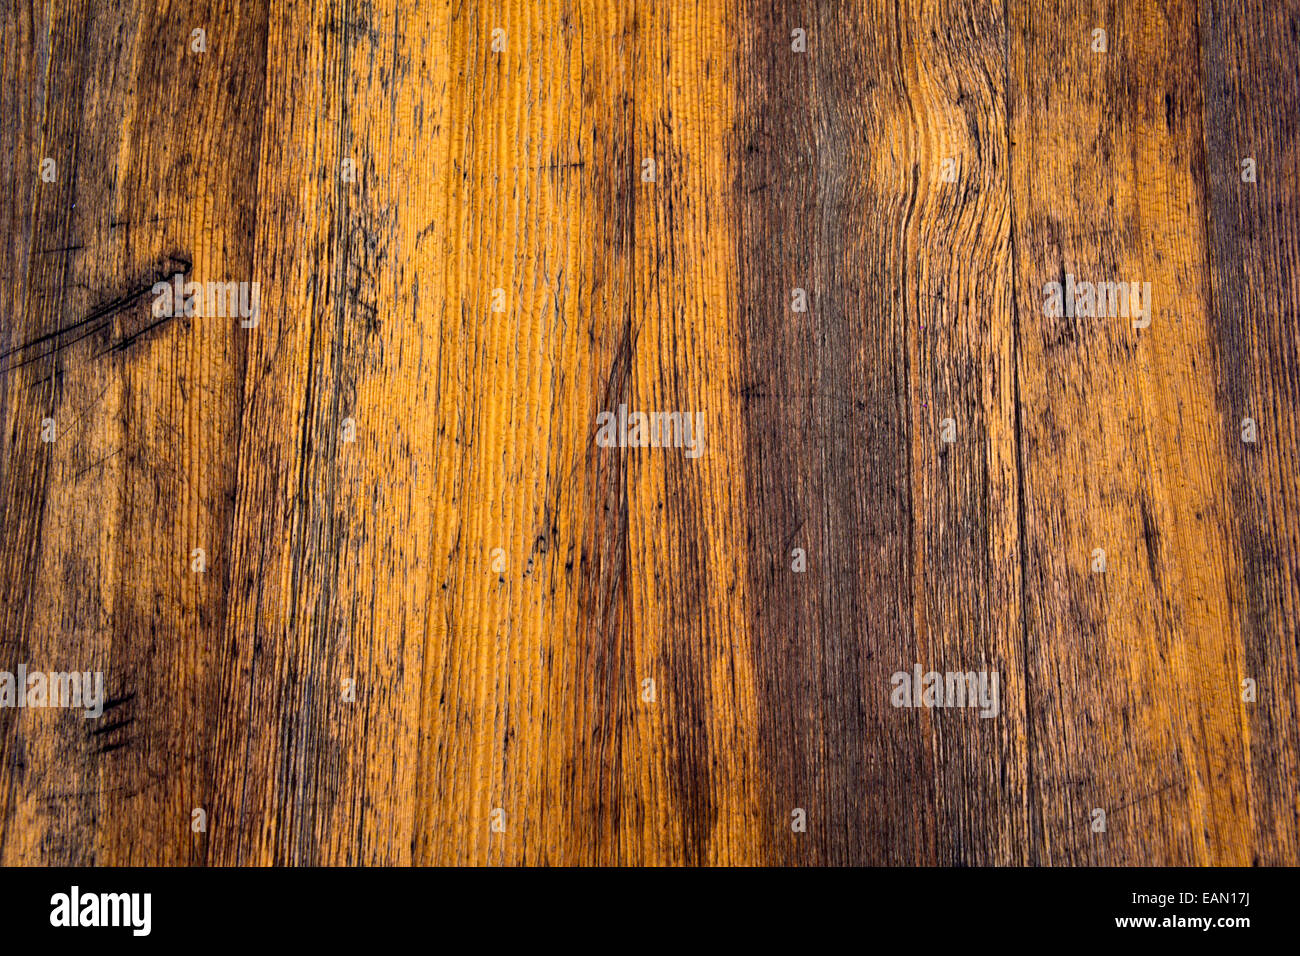 wood planks weathered down - Stock Image